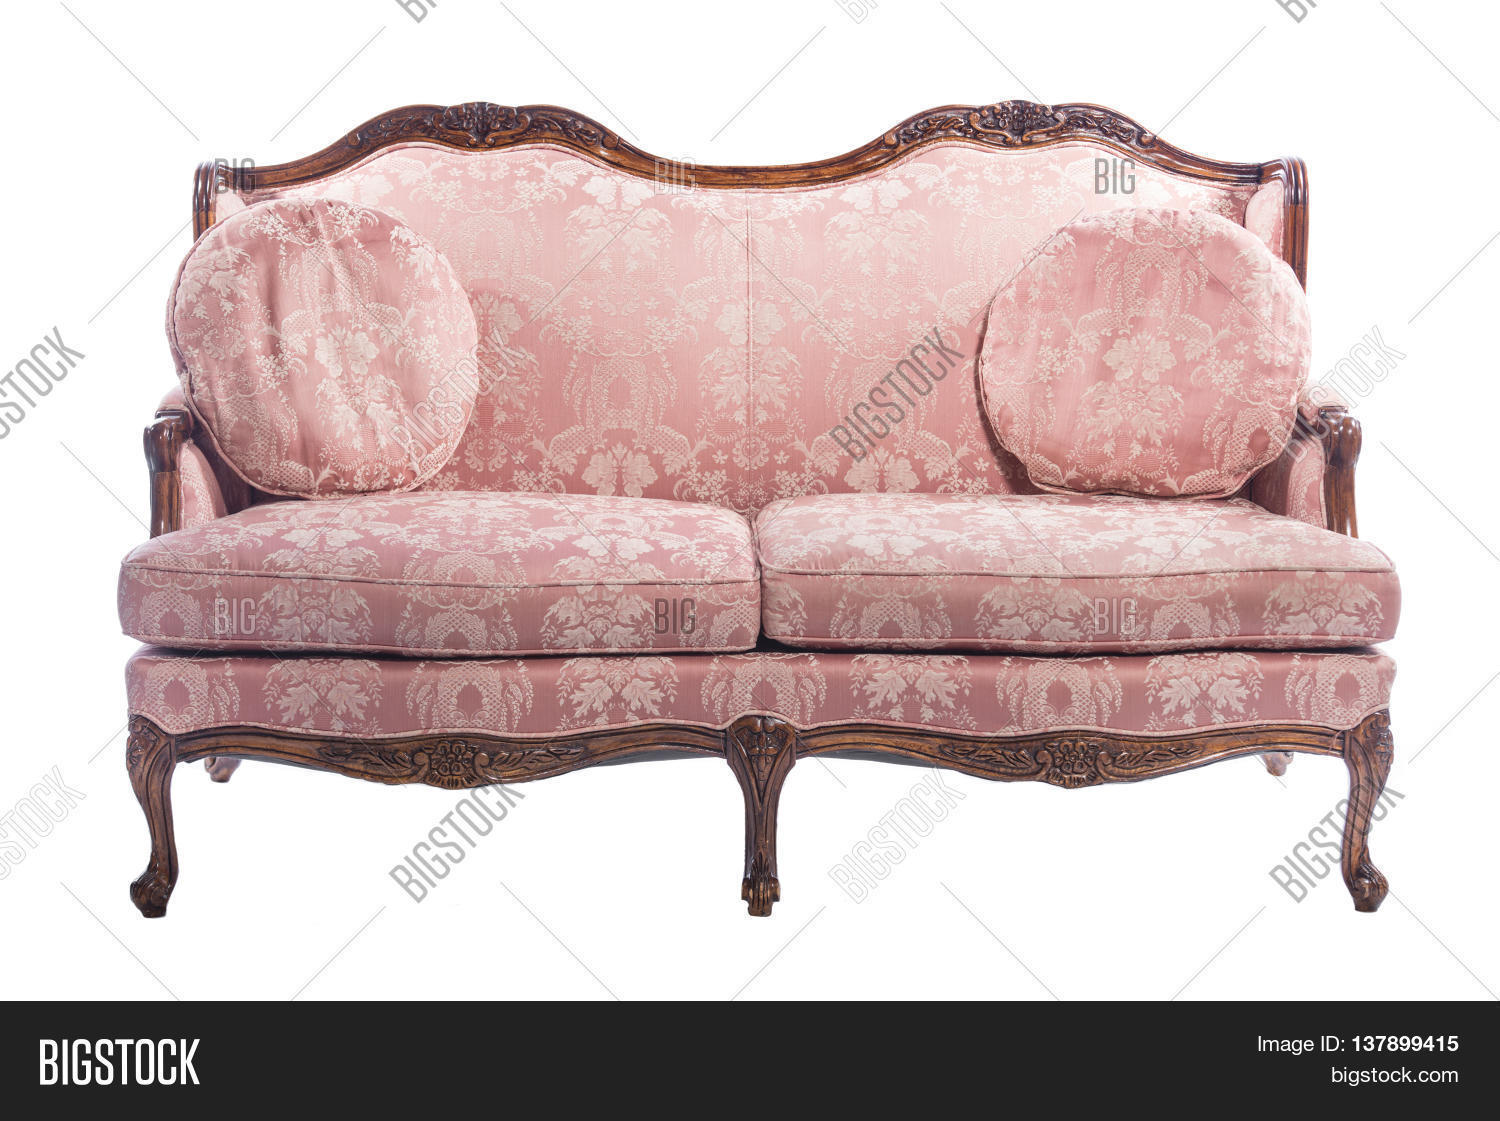 Genial Pink Wooden Royal Ornament Luxury Vintage Sofa With Two Seats And Pillows  Isolated On White Background